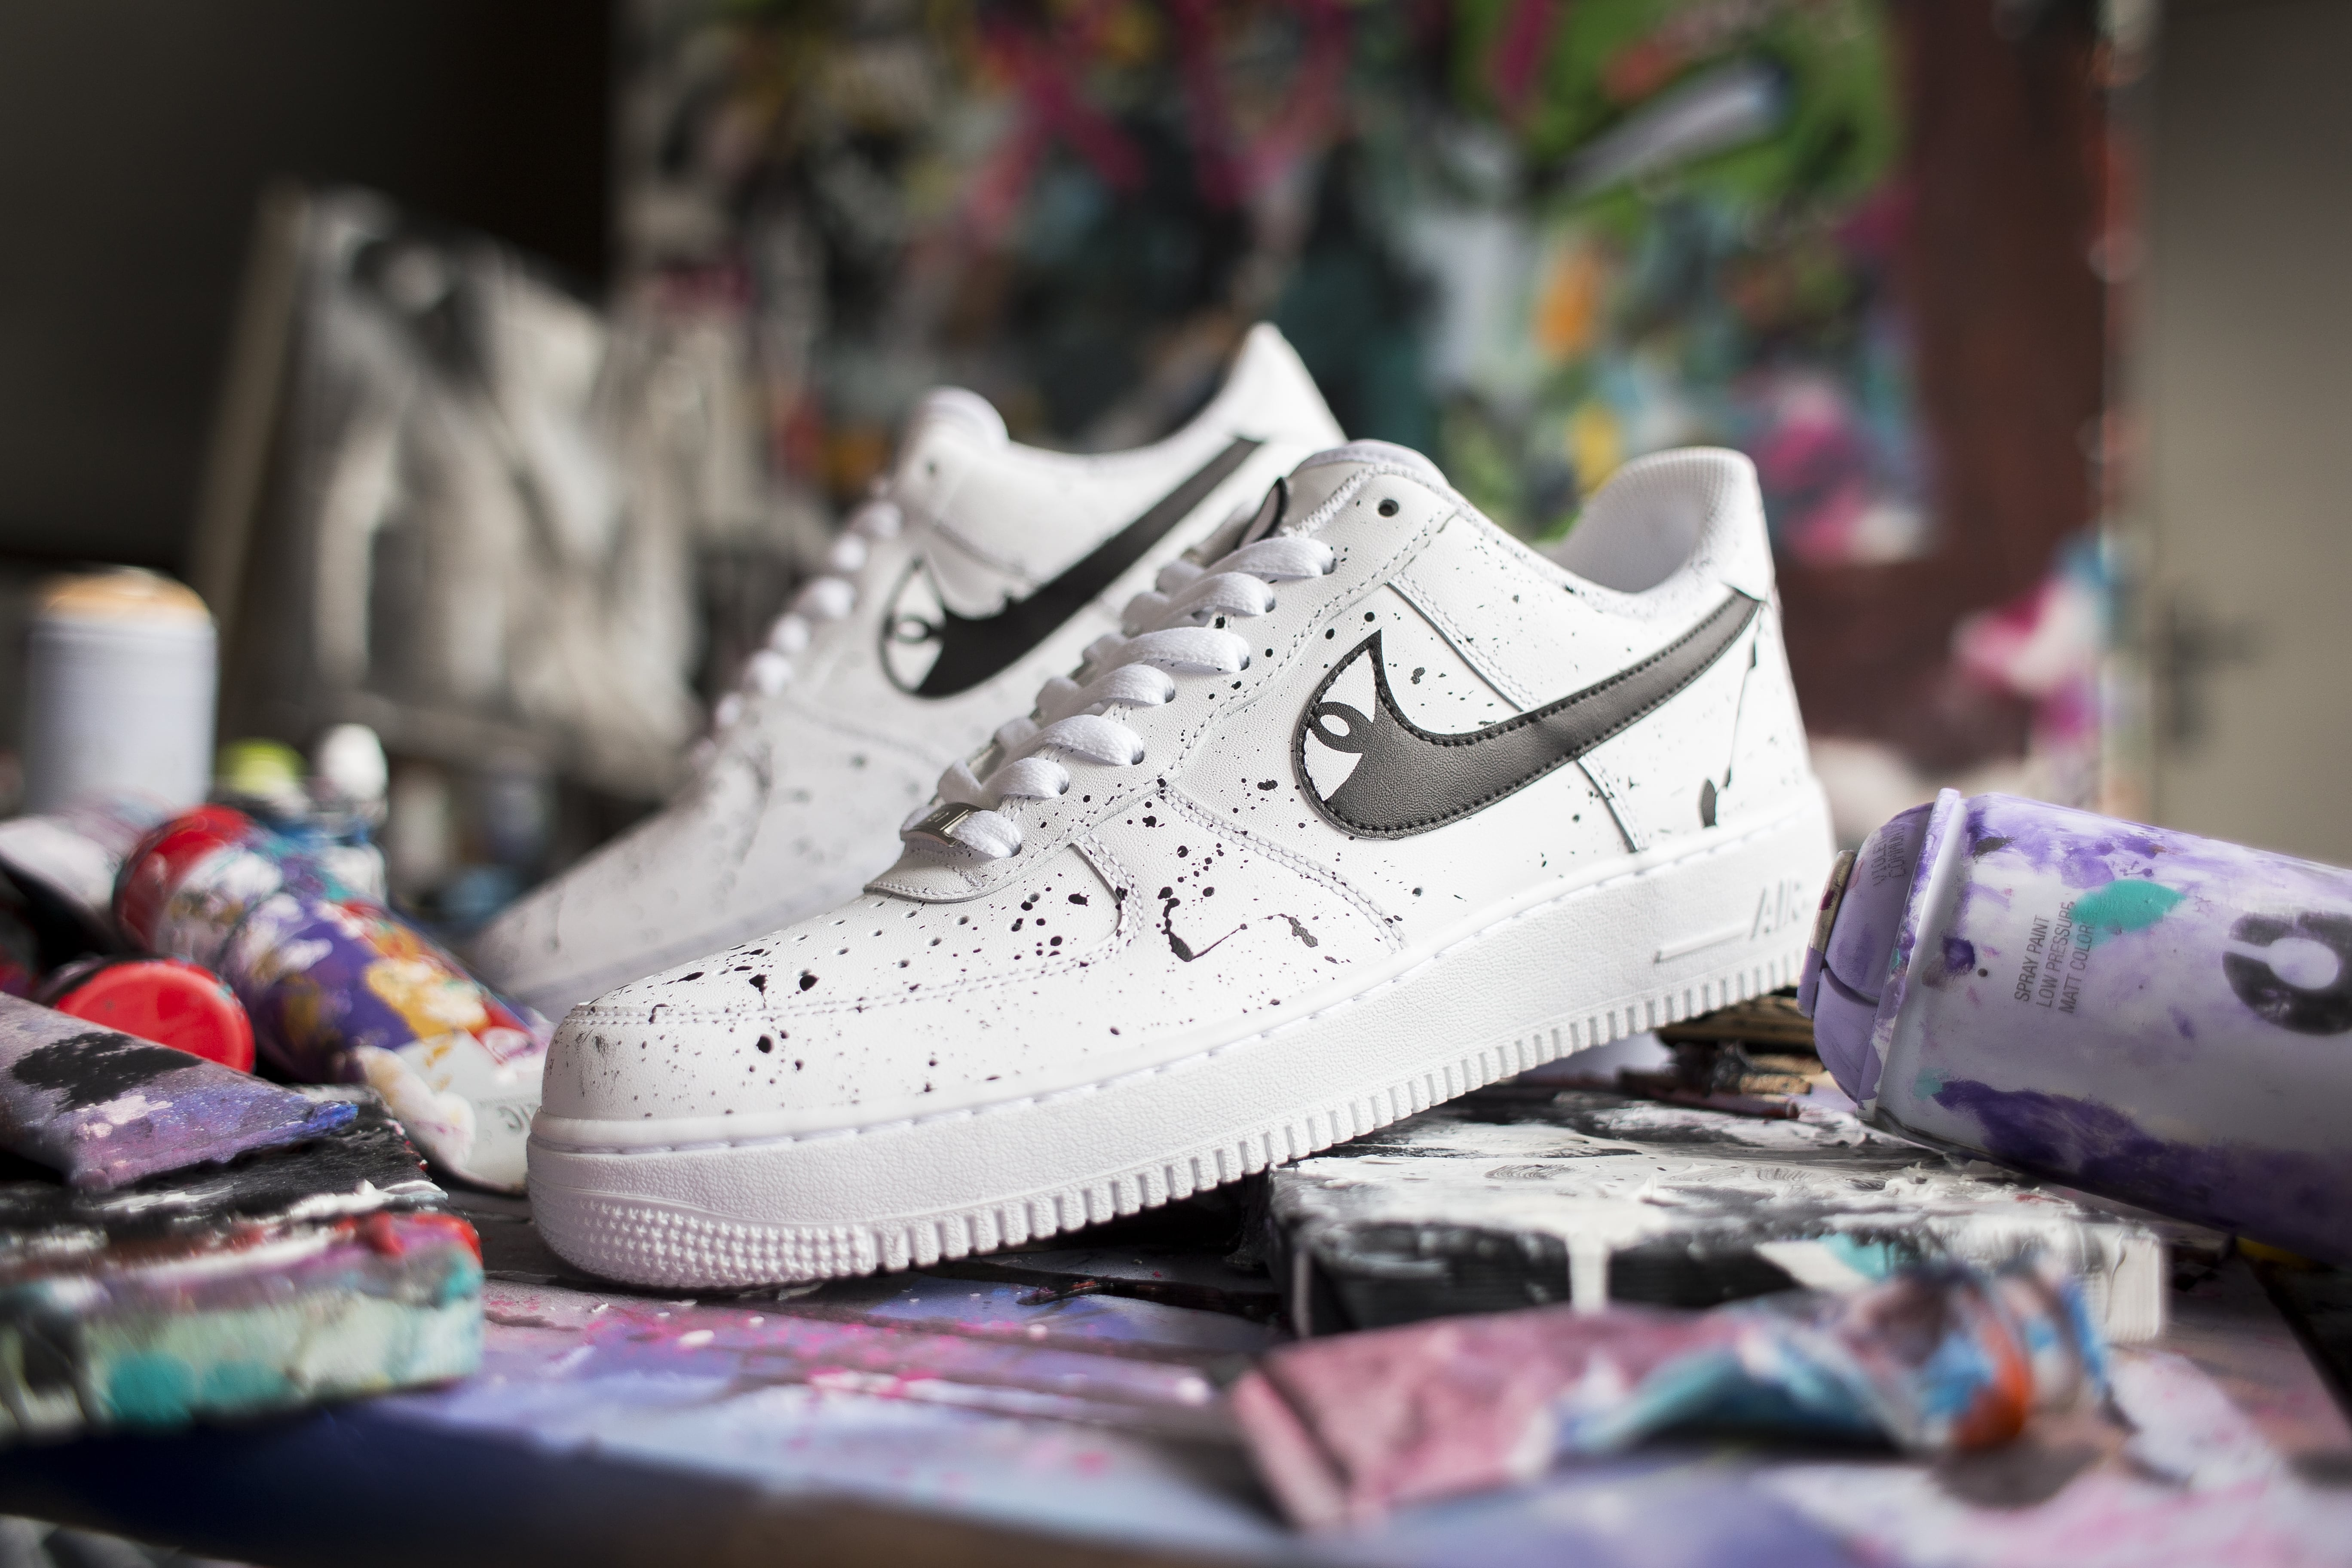 Nike Air Force Low Noriaki